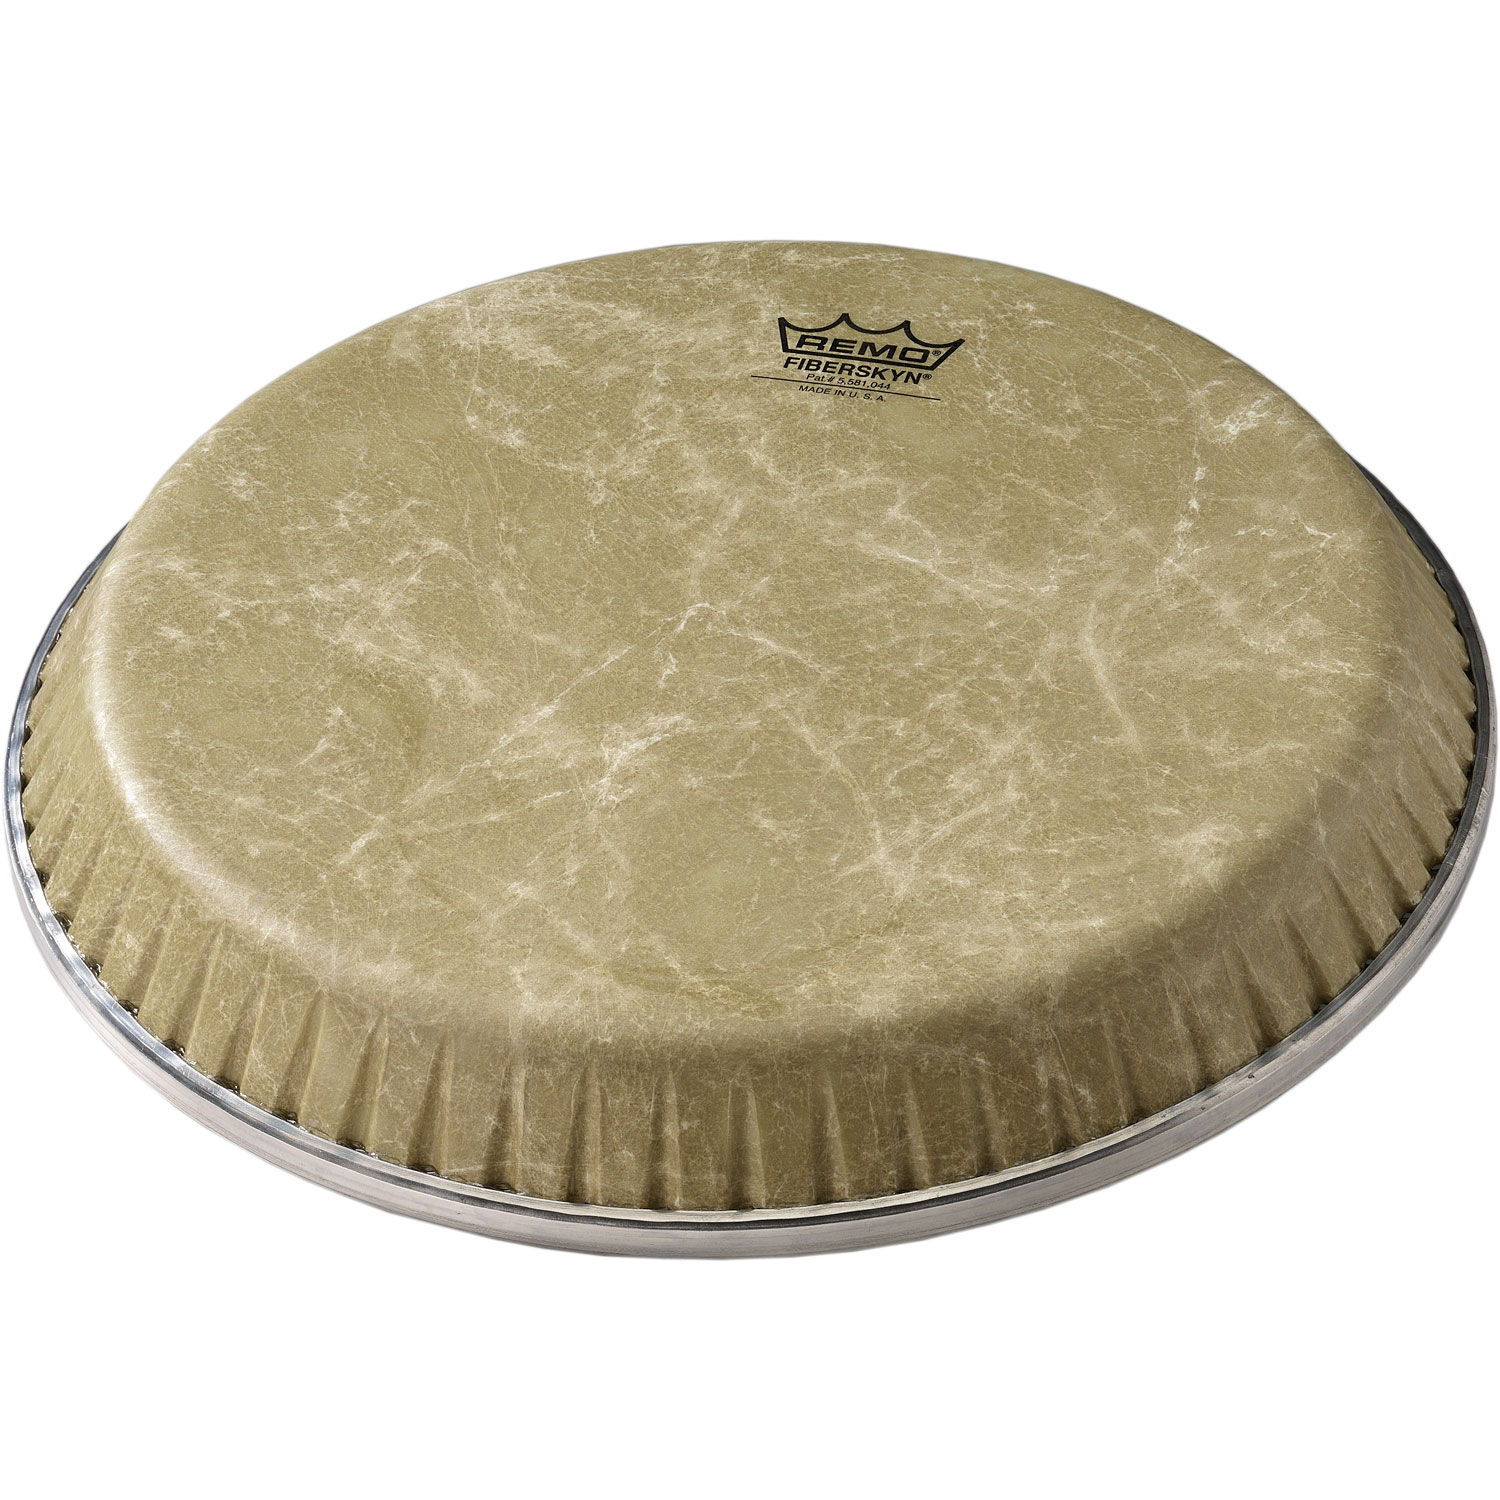 "Remo 9.75"" Symmetry Fiberskyn Conga Drum Head (D1 Collar)"